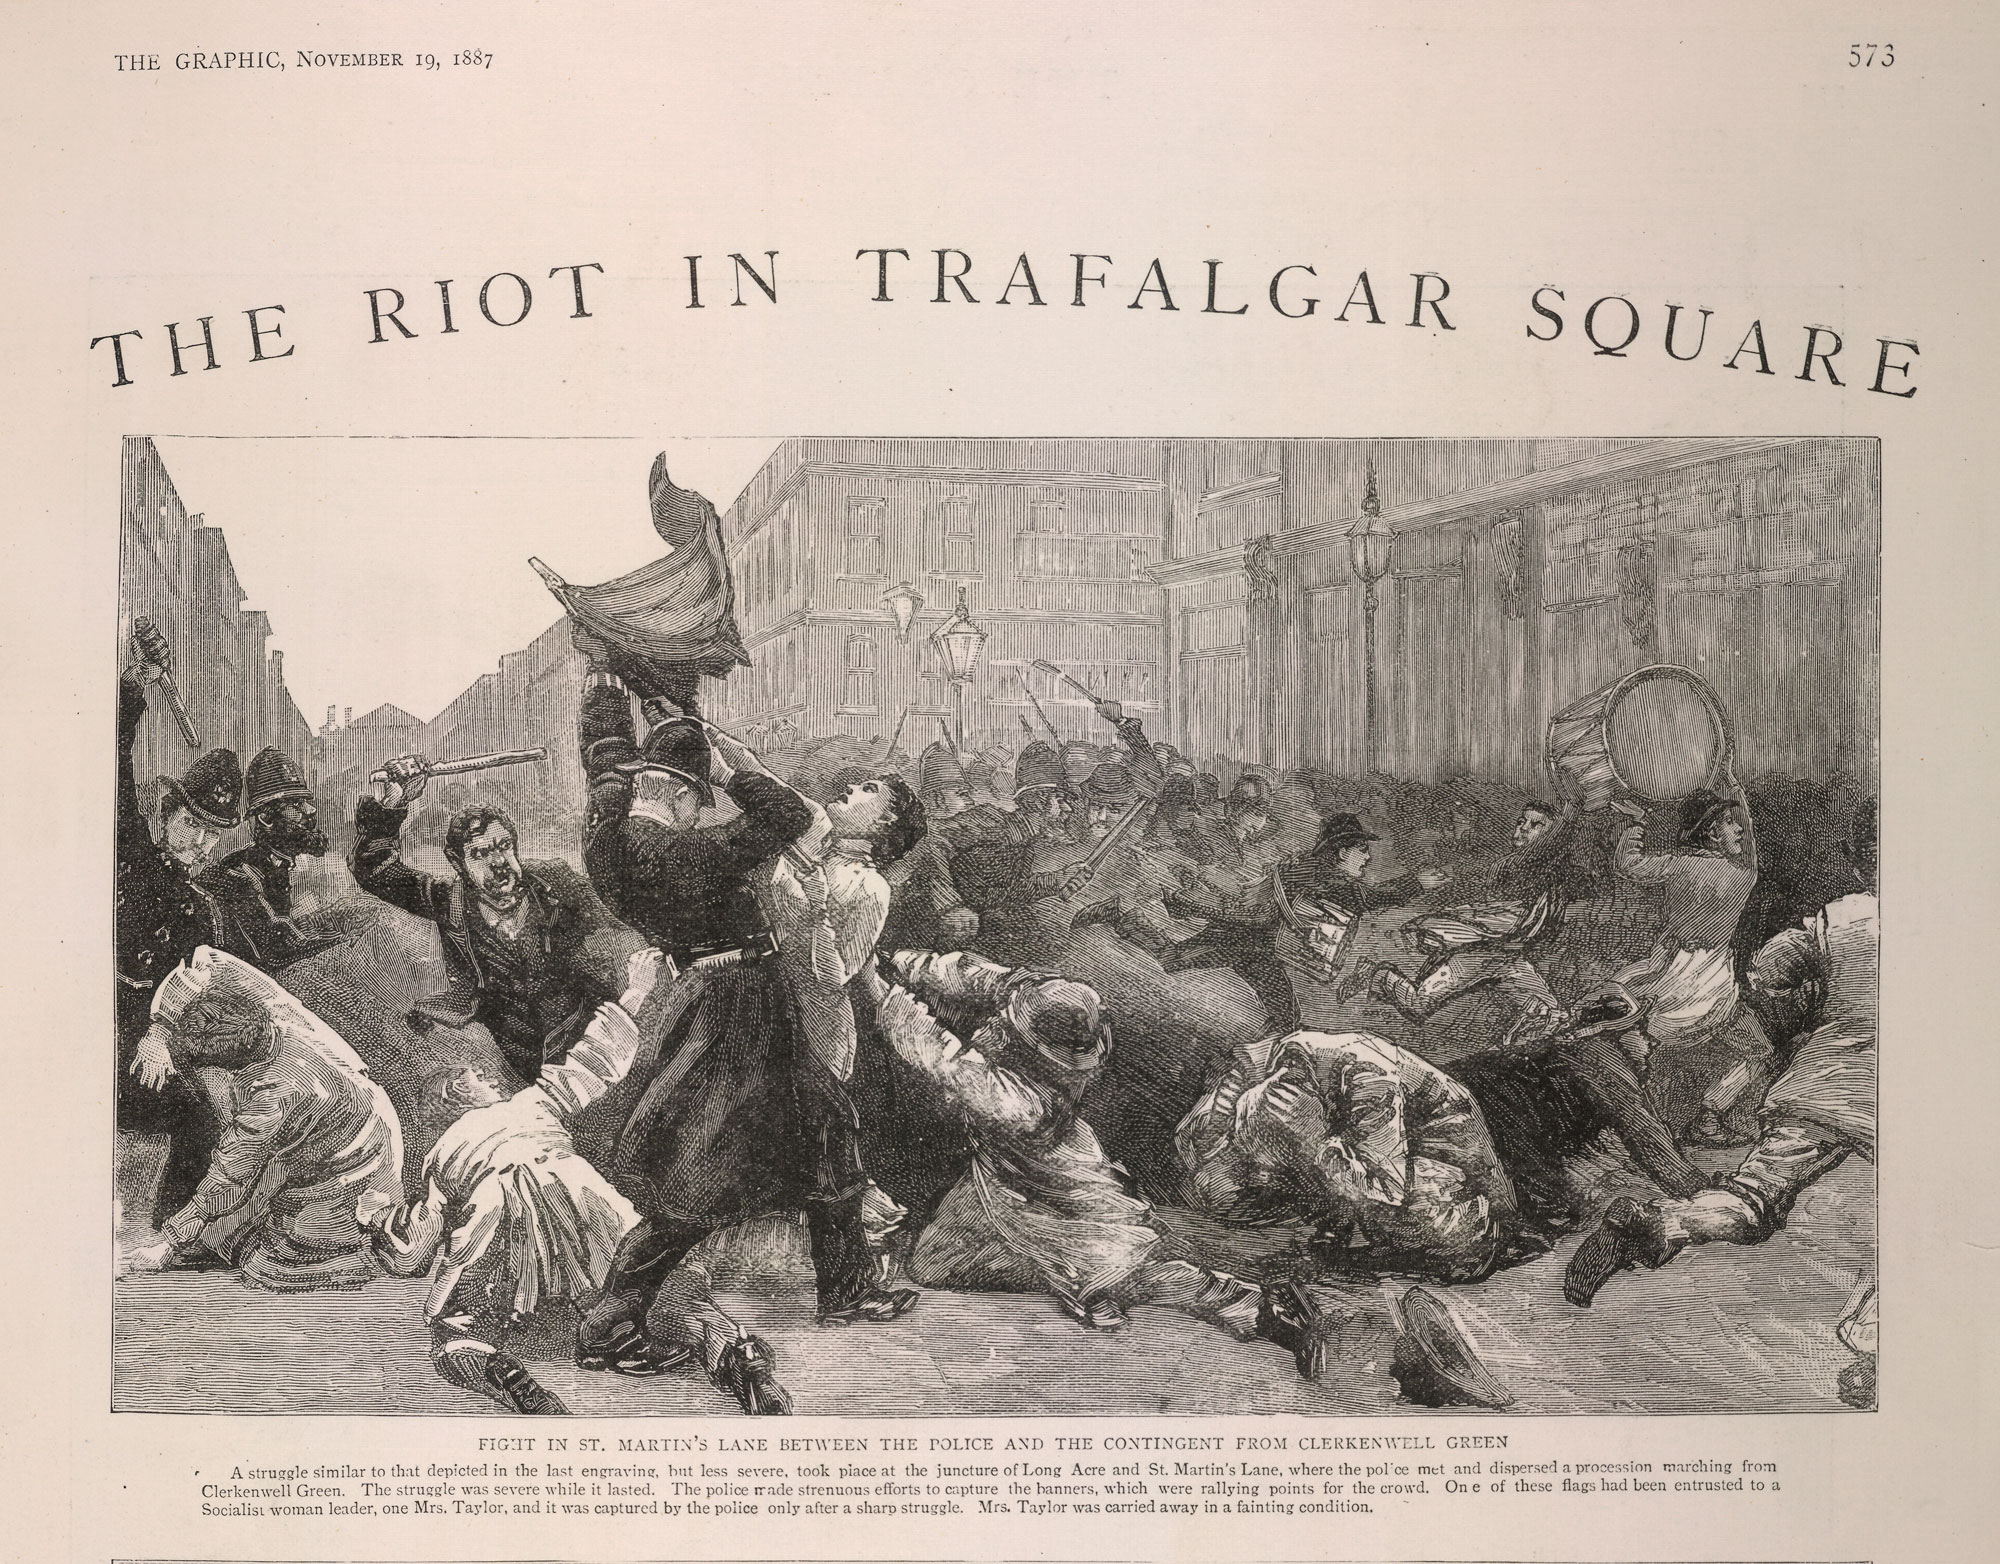 'The Riot in Trafalgar Square' from the Graphic